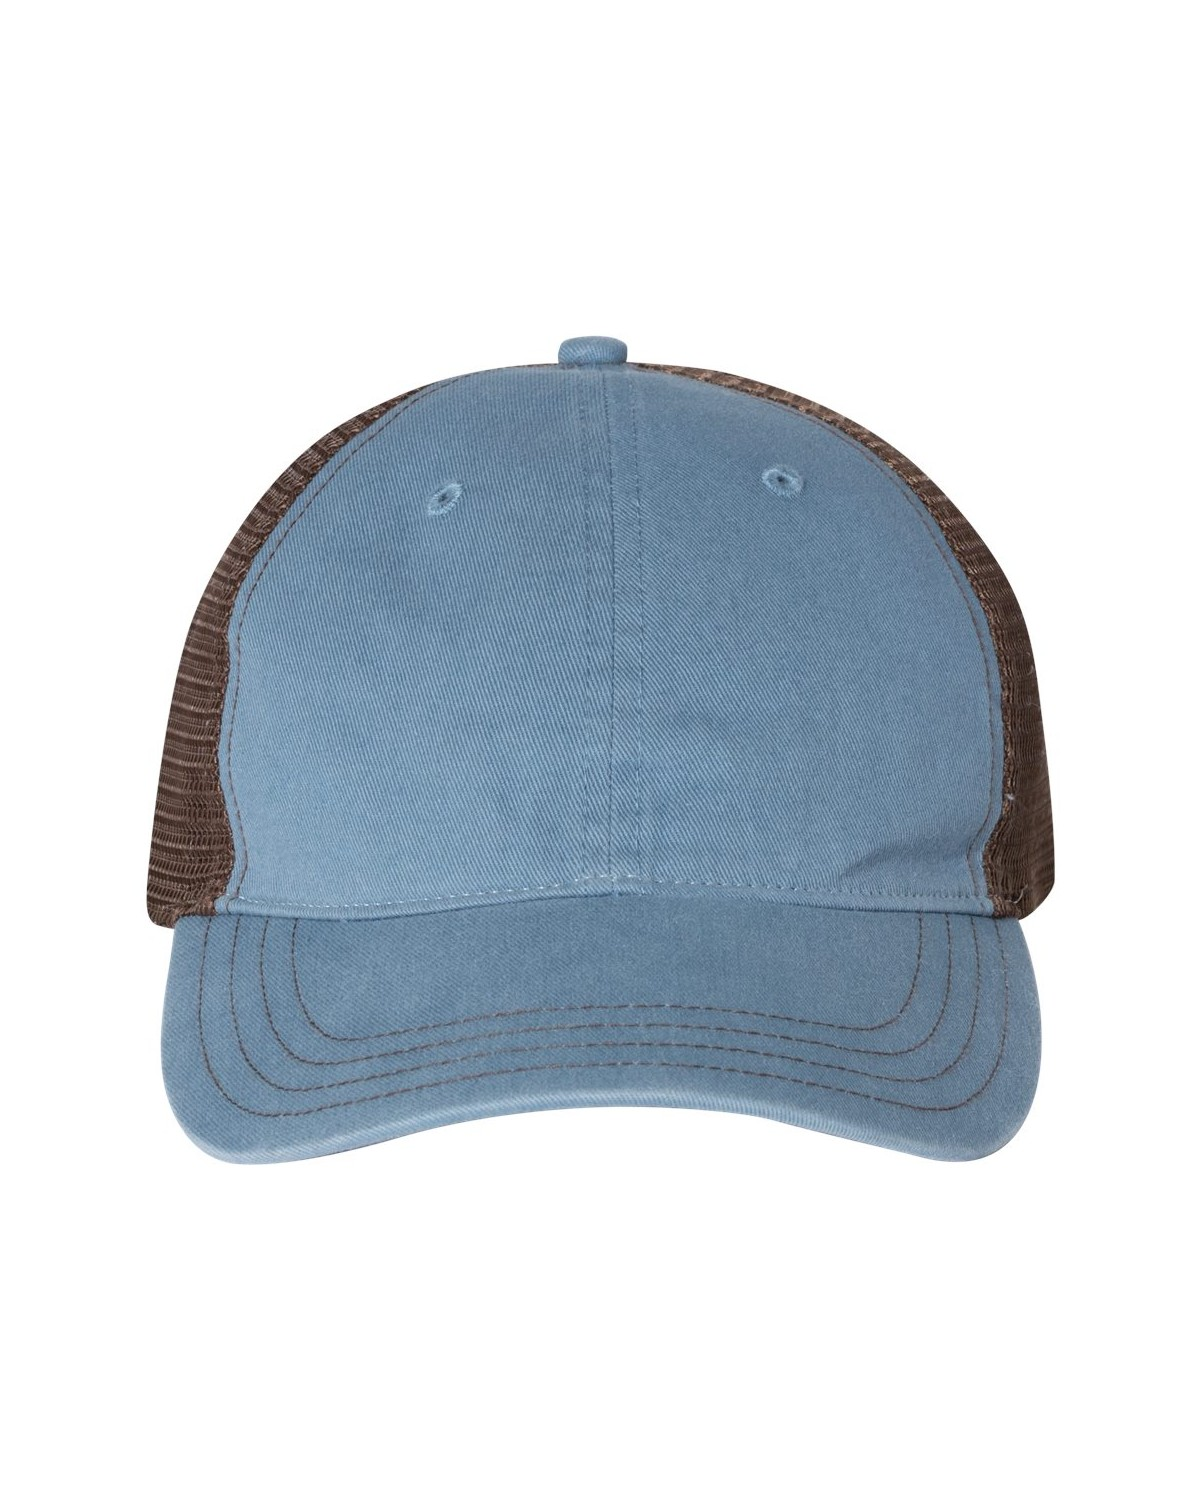 74bf3c3e2c0e6 Richardson 111 Garment Washed Trucker Cap ...